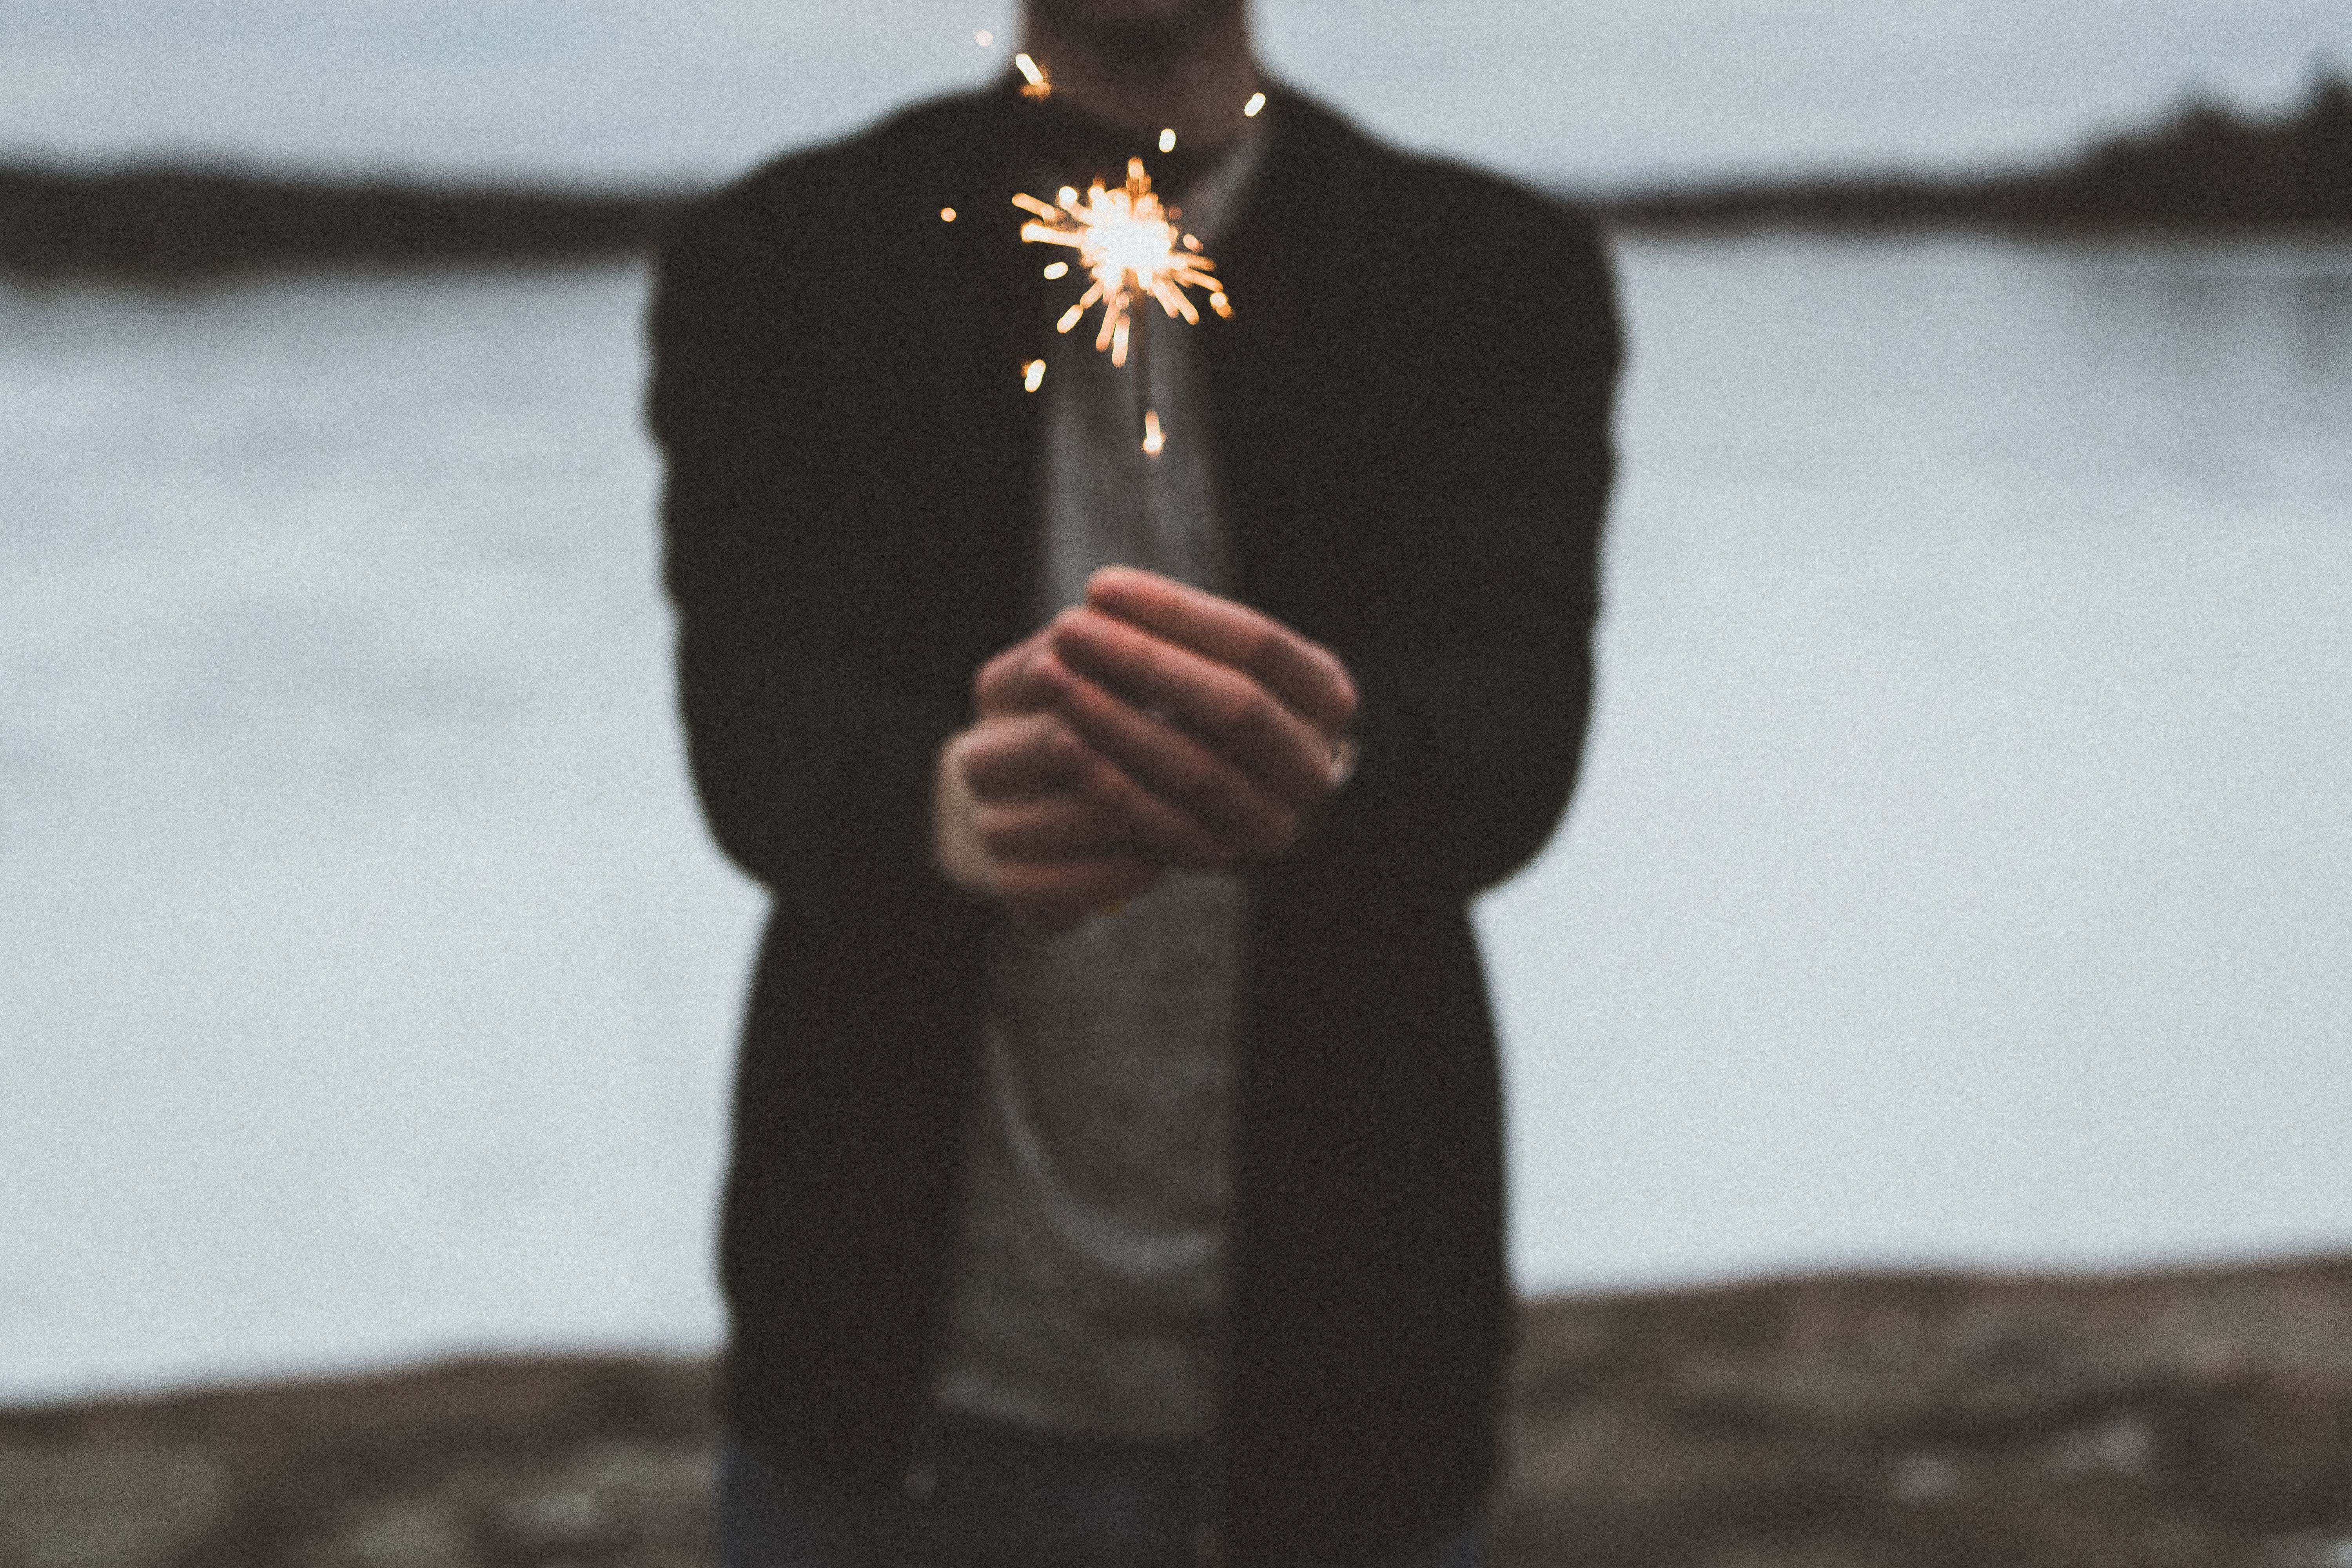 person playing with handheld fireworks